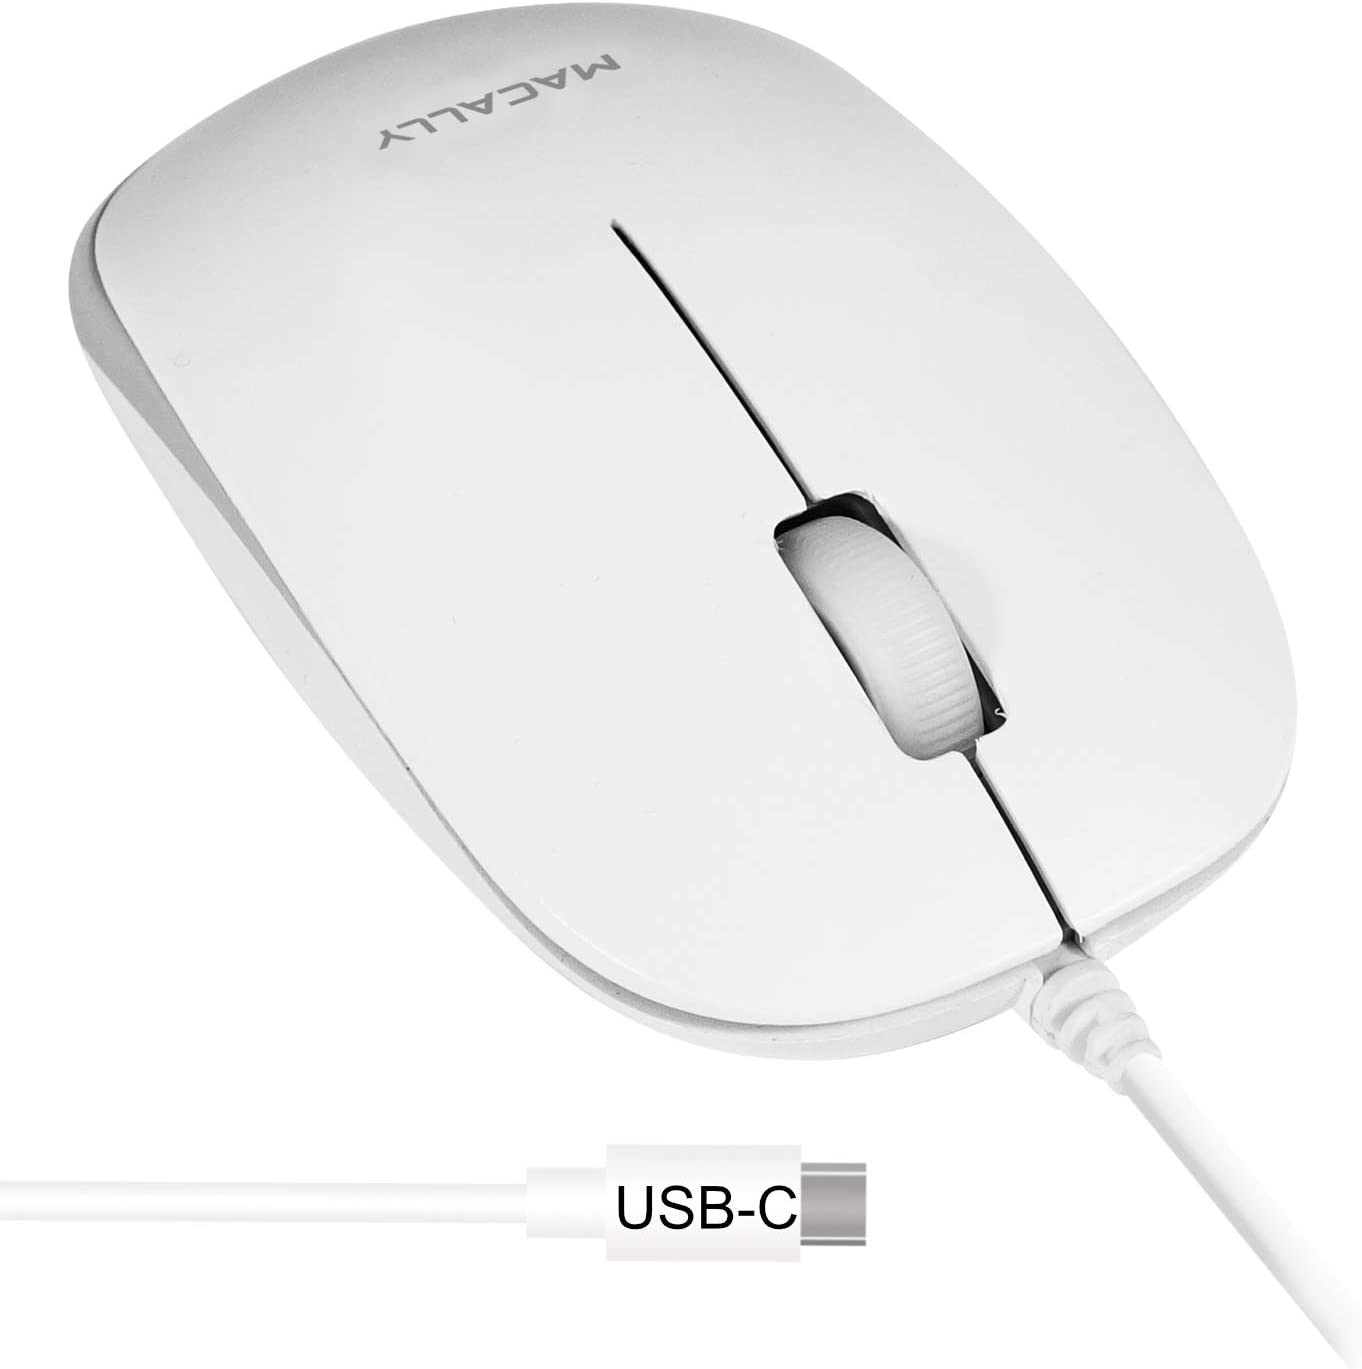 Macally Wired Type C Mouse for Mac and Windows - Compact Ambidextrous Design with Soft Click Buttons - USB C Mouse with 1200 DPI Sensor and 5ft Cable - Simple Corded Mouse USB C for Newer Gen Devices